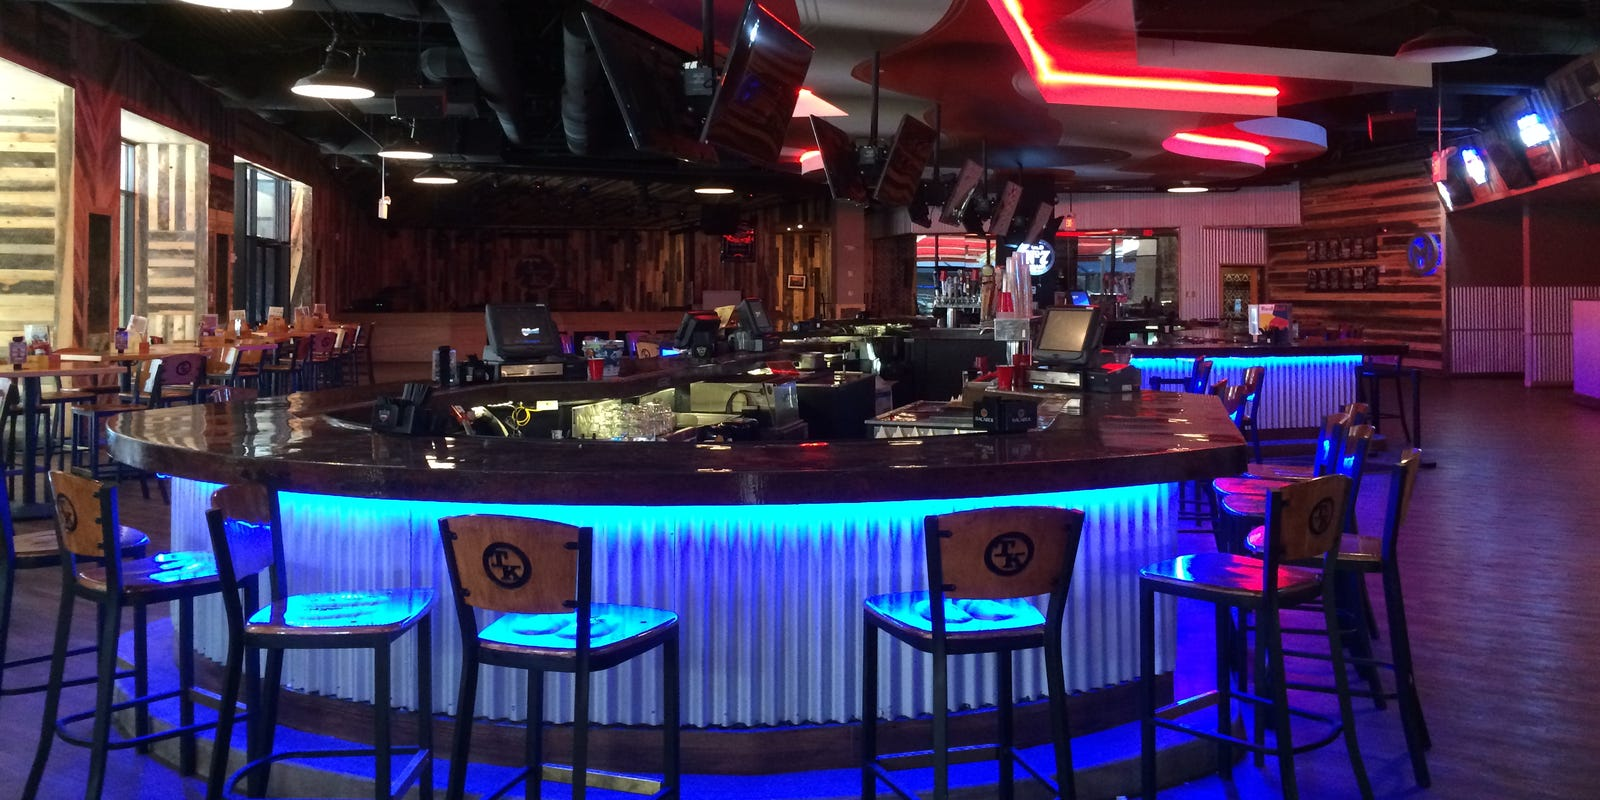 Toby Keith's I Love This Bar and Grill closings, lawsuits